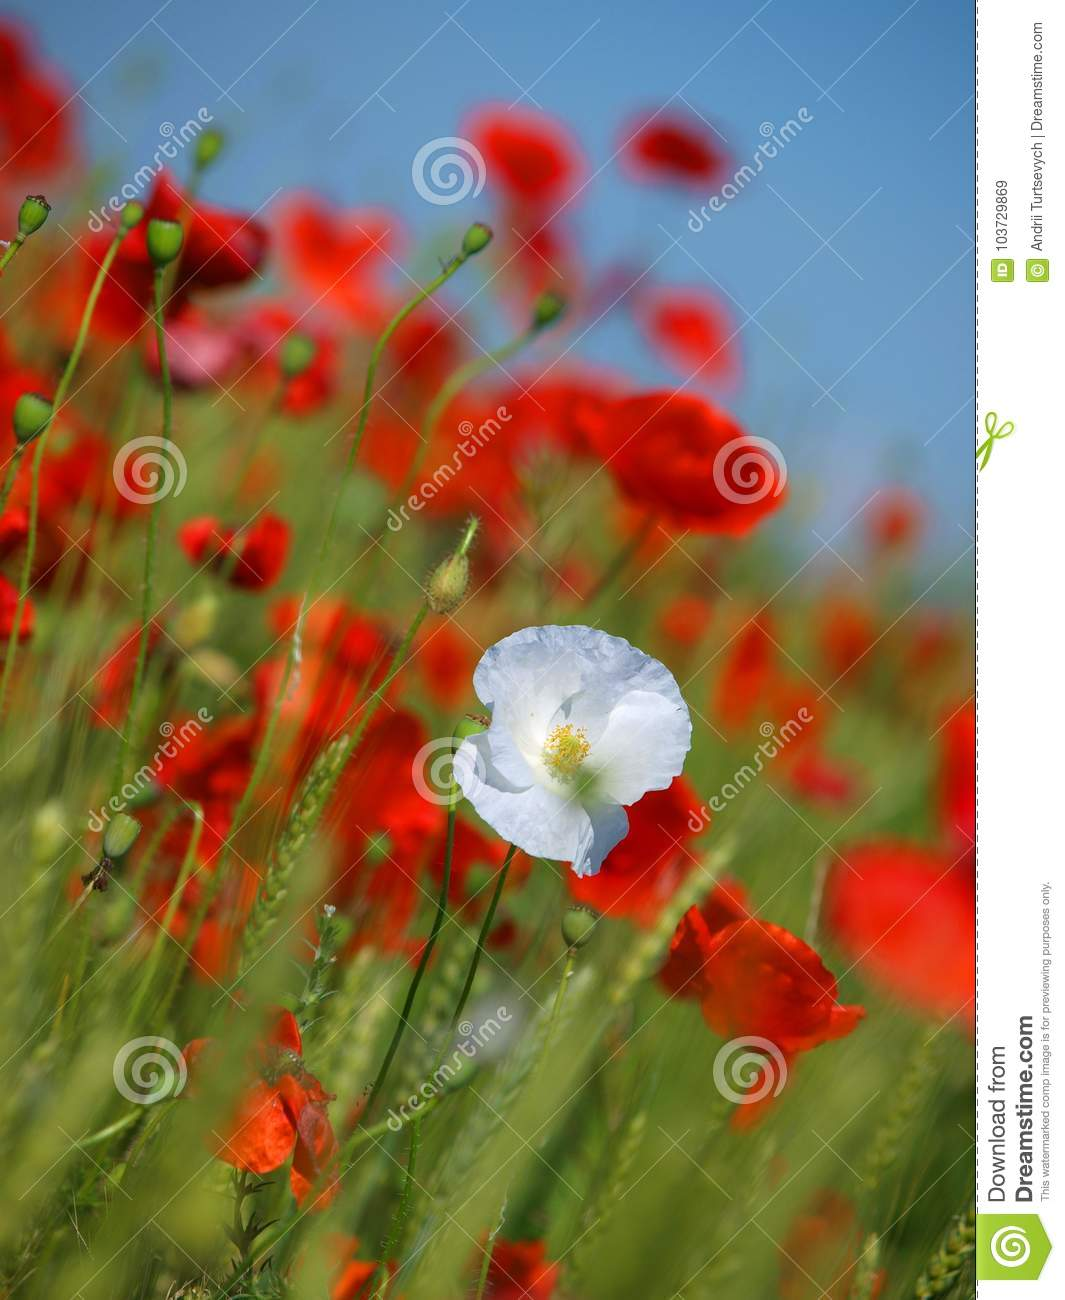 White And Red Poppy Flowers In The Middle Of A Wheat Field Stock